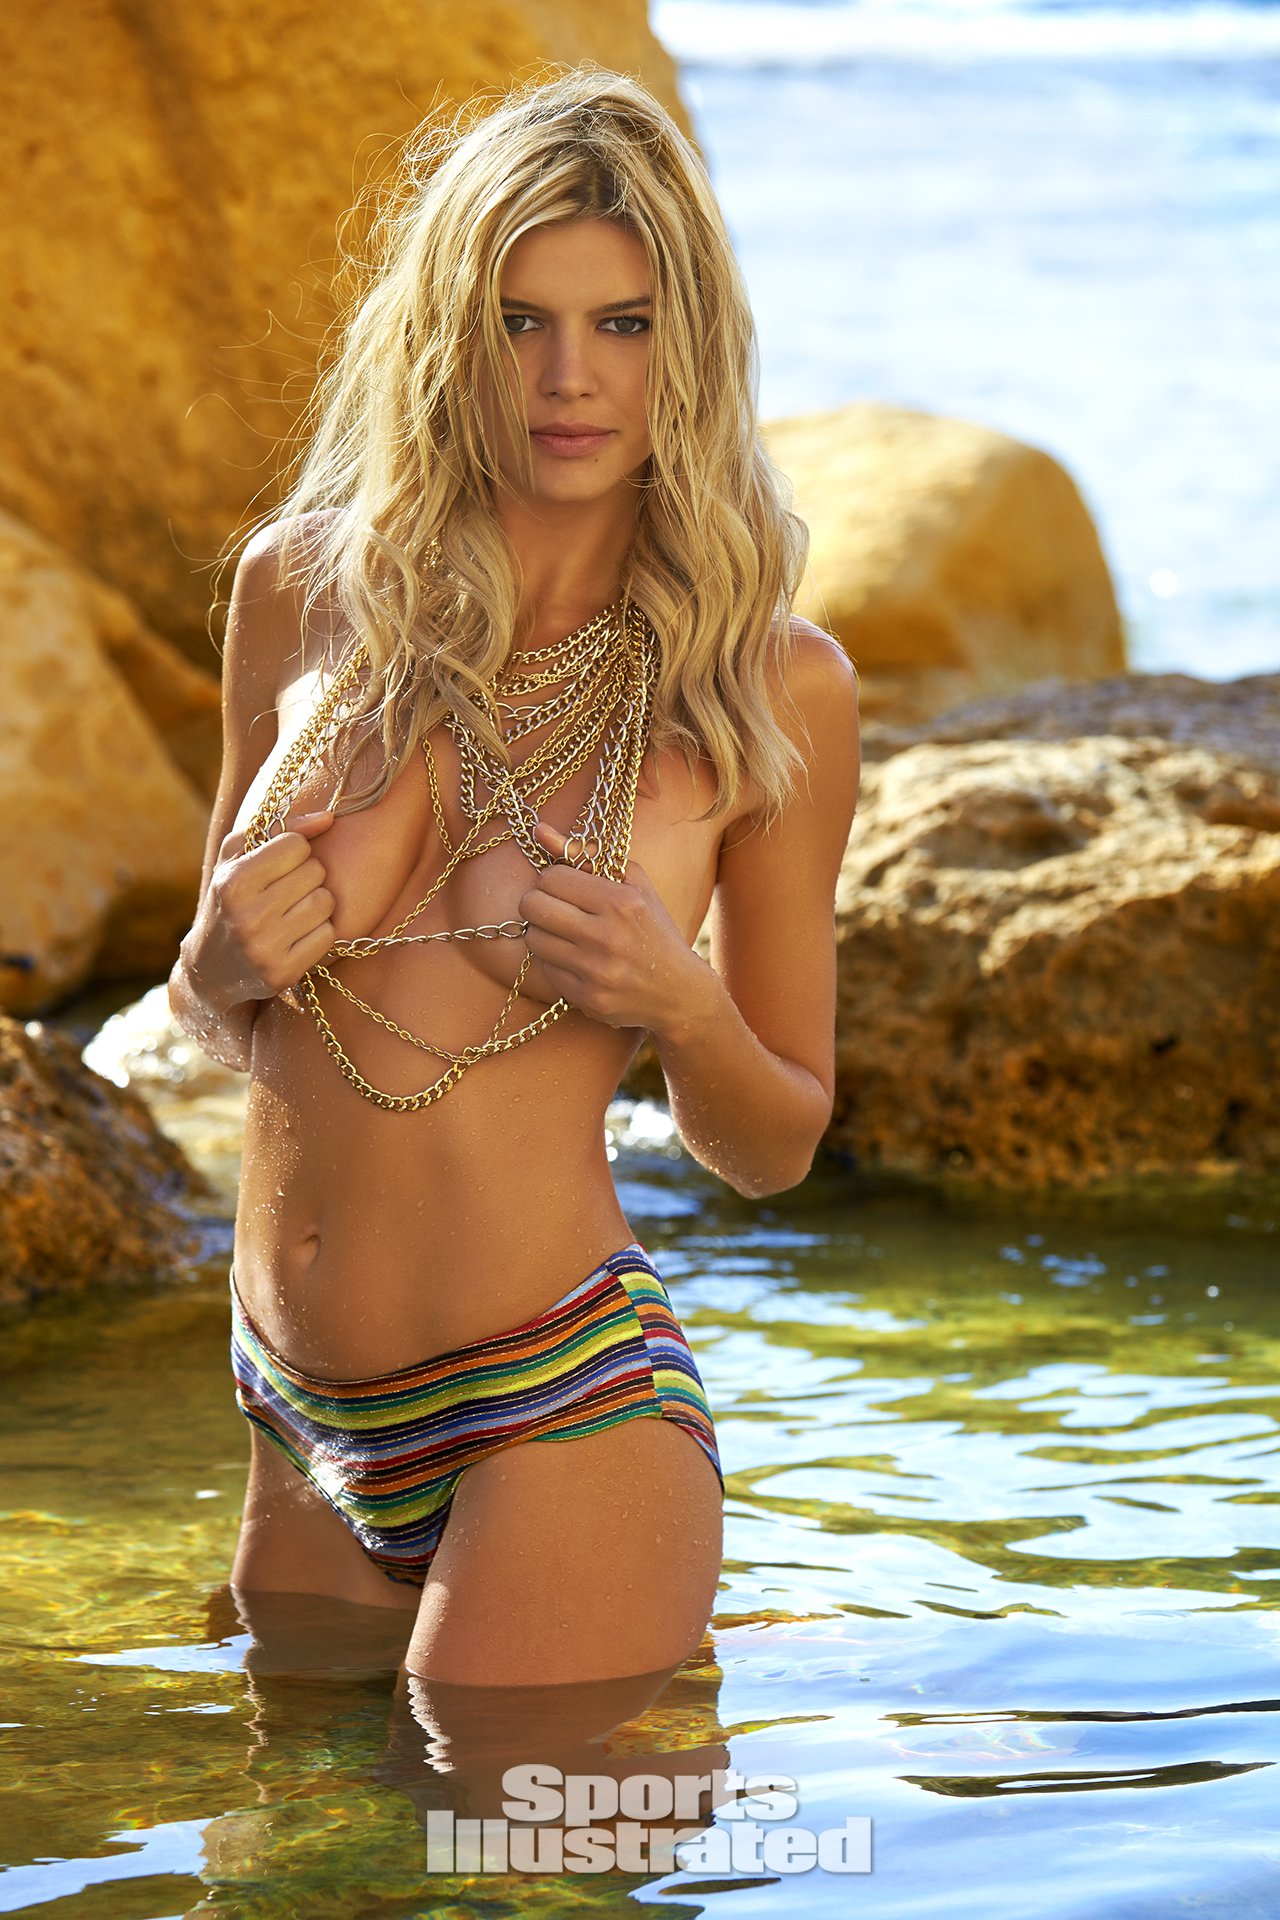 Kelly Rohrbach was photographed by Ben Watts in Malta. Swimsuit by Only Hearts.